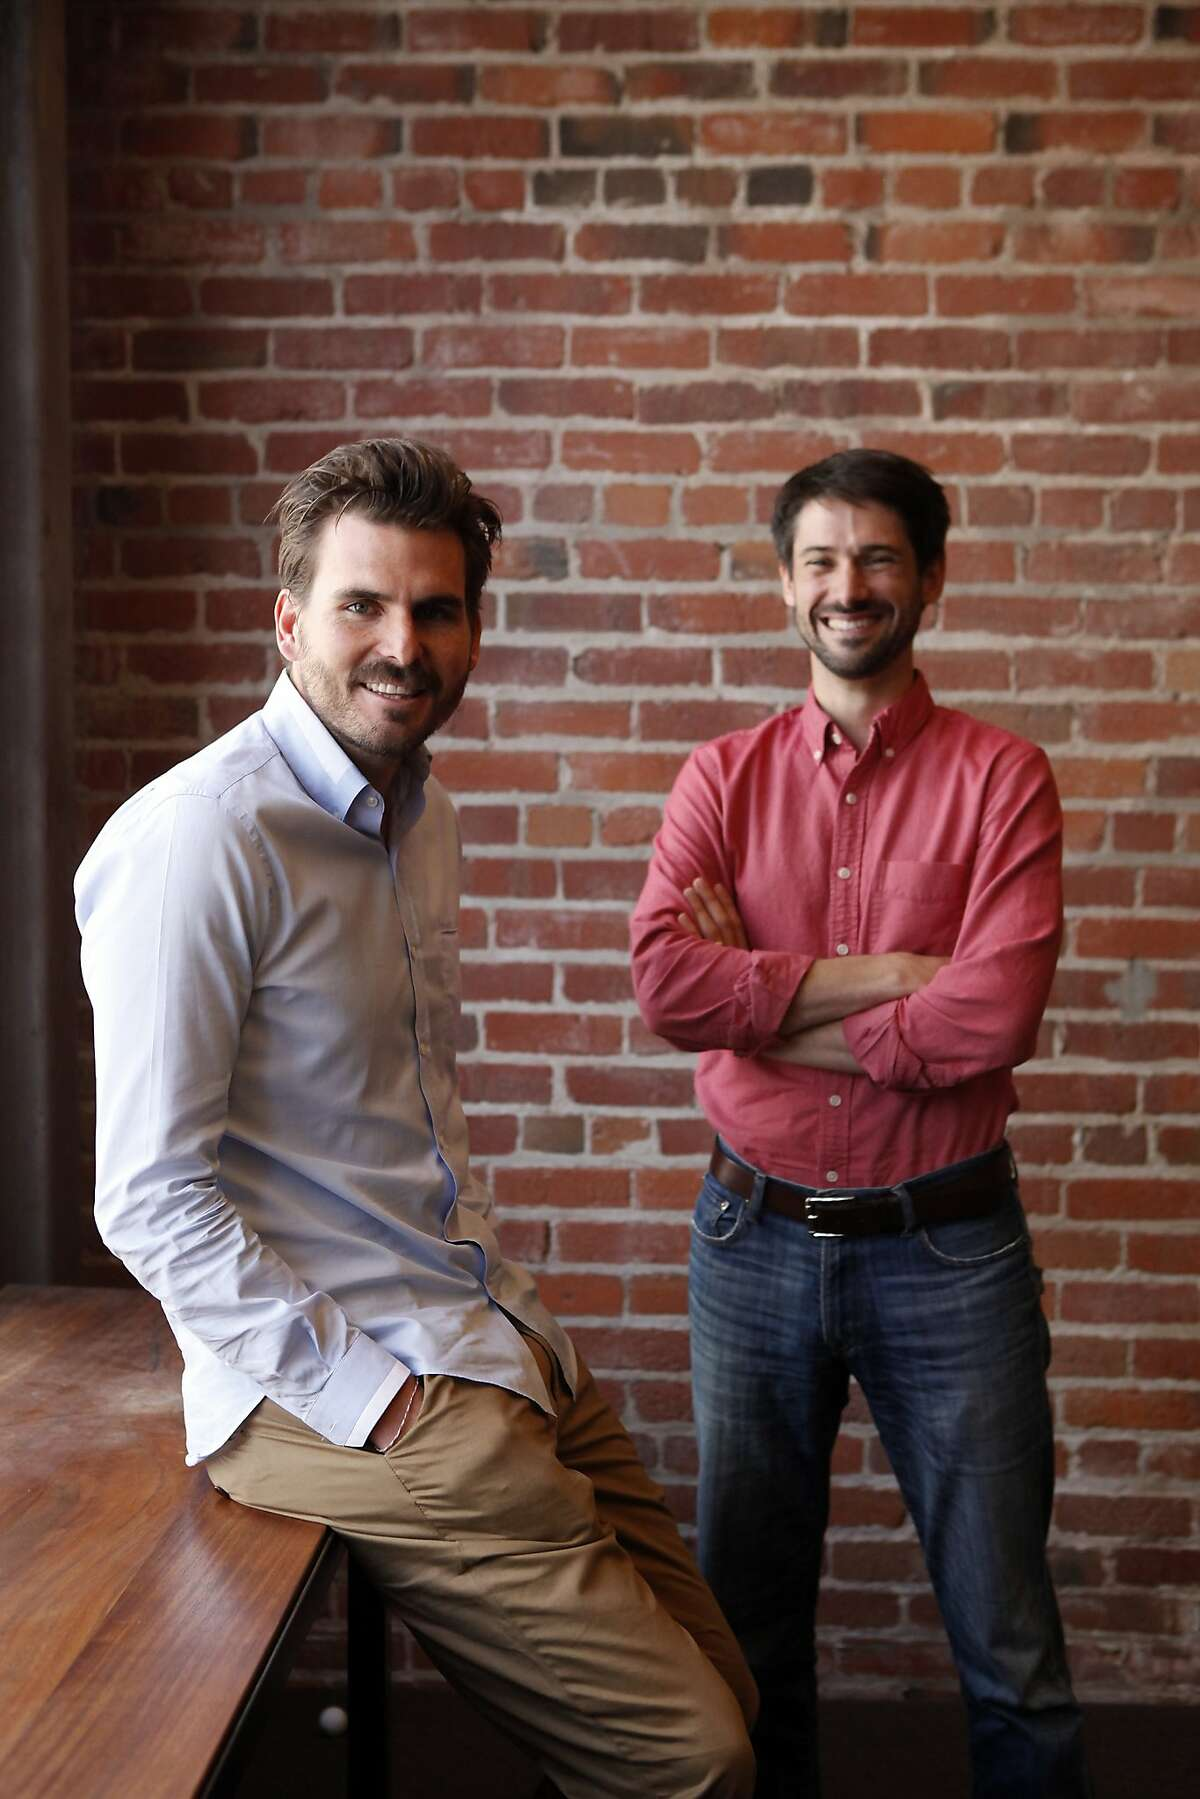 President James Windon, left, and CEO Matt Mahan pose for a portrait at Brigade, a new start-up that?•s being touted as a way to engage young voters in politics by making it more like a social media experience, at their offices in San Francisco, CA, Tuesday, July 15, 2014.